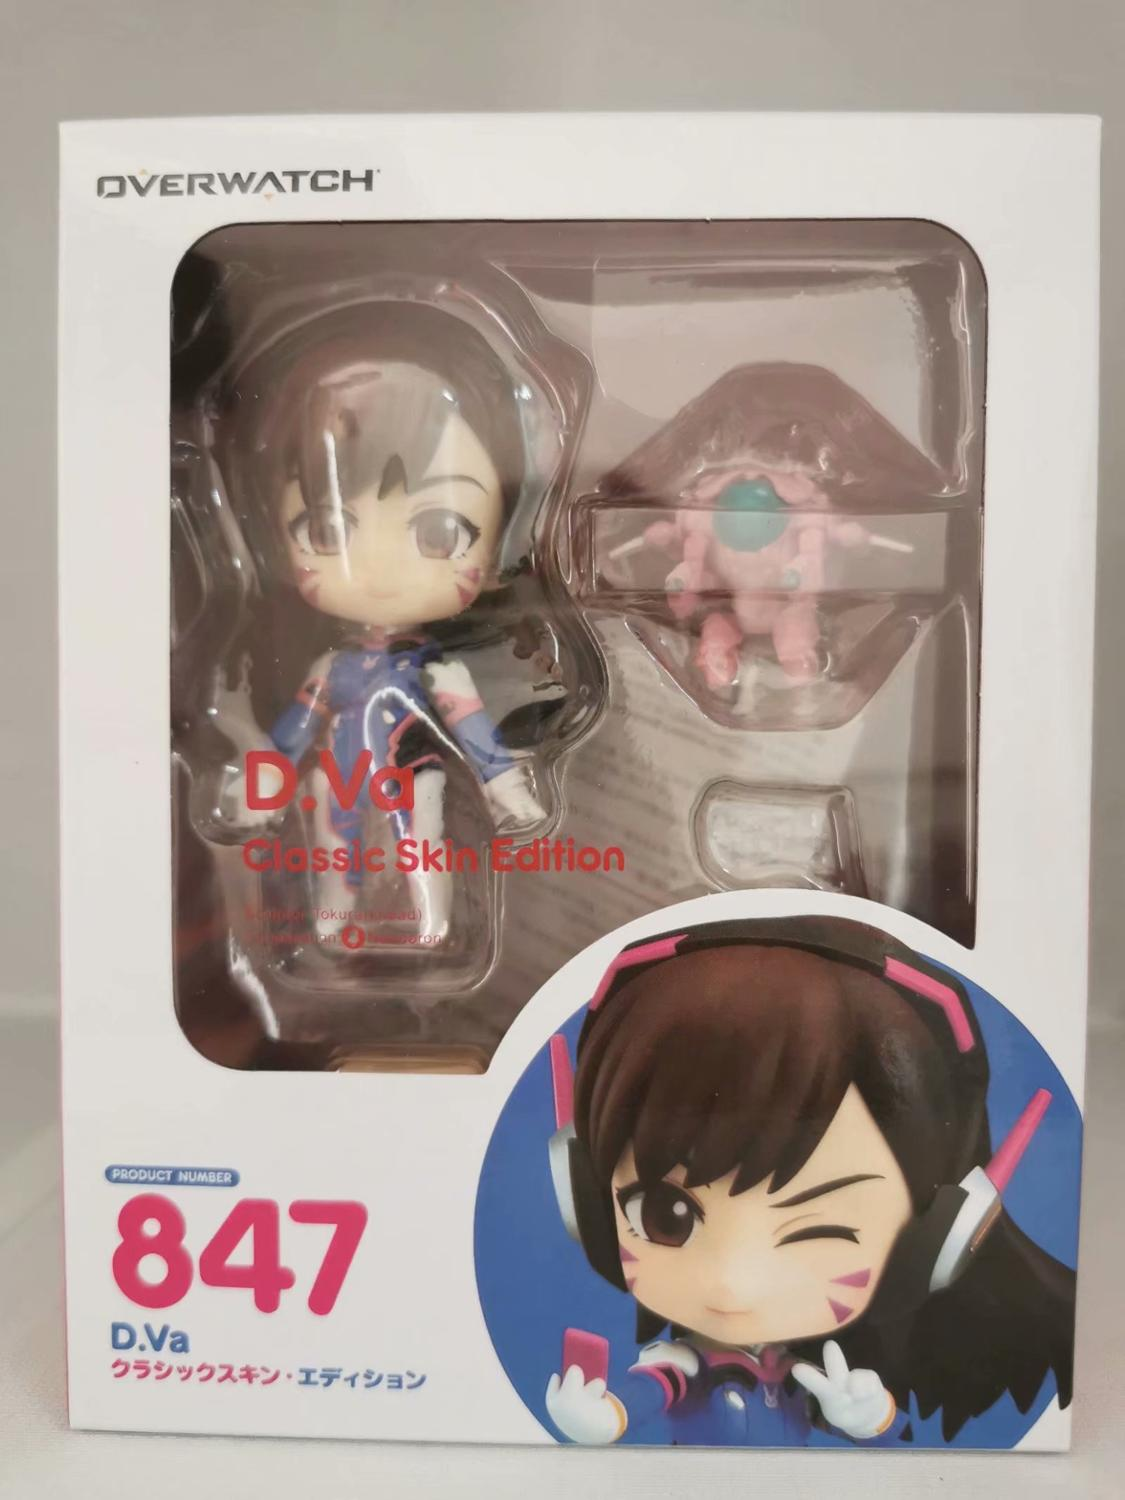 10cm Overwatches 847 D.VA Classic Skin Edition PVC Action Figures Model Toys Gift Doll 5